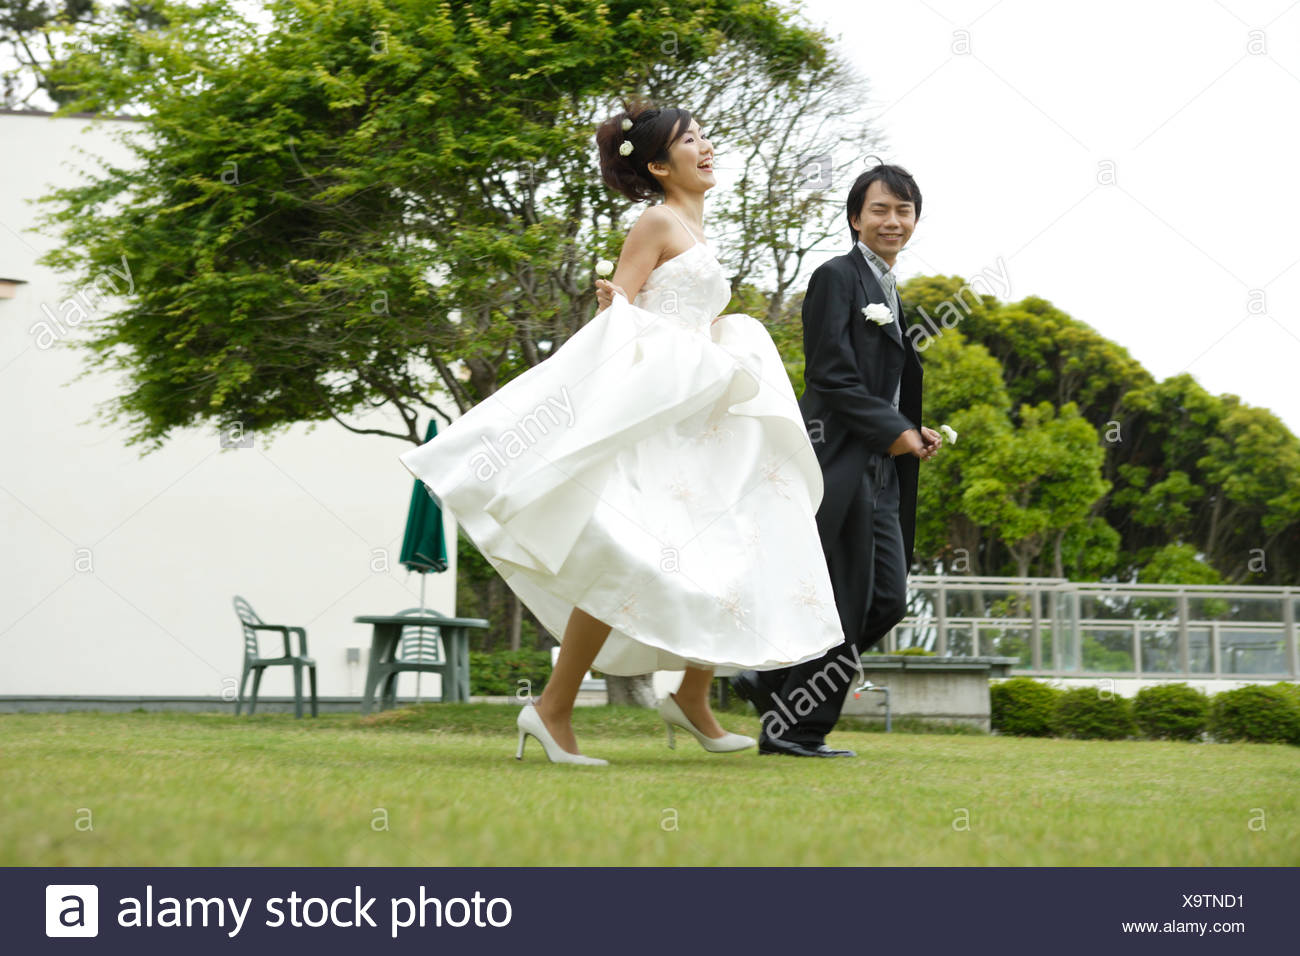 Remarkable Bride And Groom Running On Lawn Stock Photo 281441469 Alamy Download Free Architecture Designs Scobabritishbridgeorg